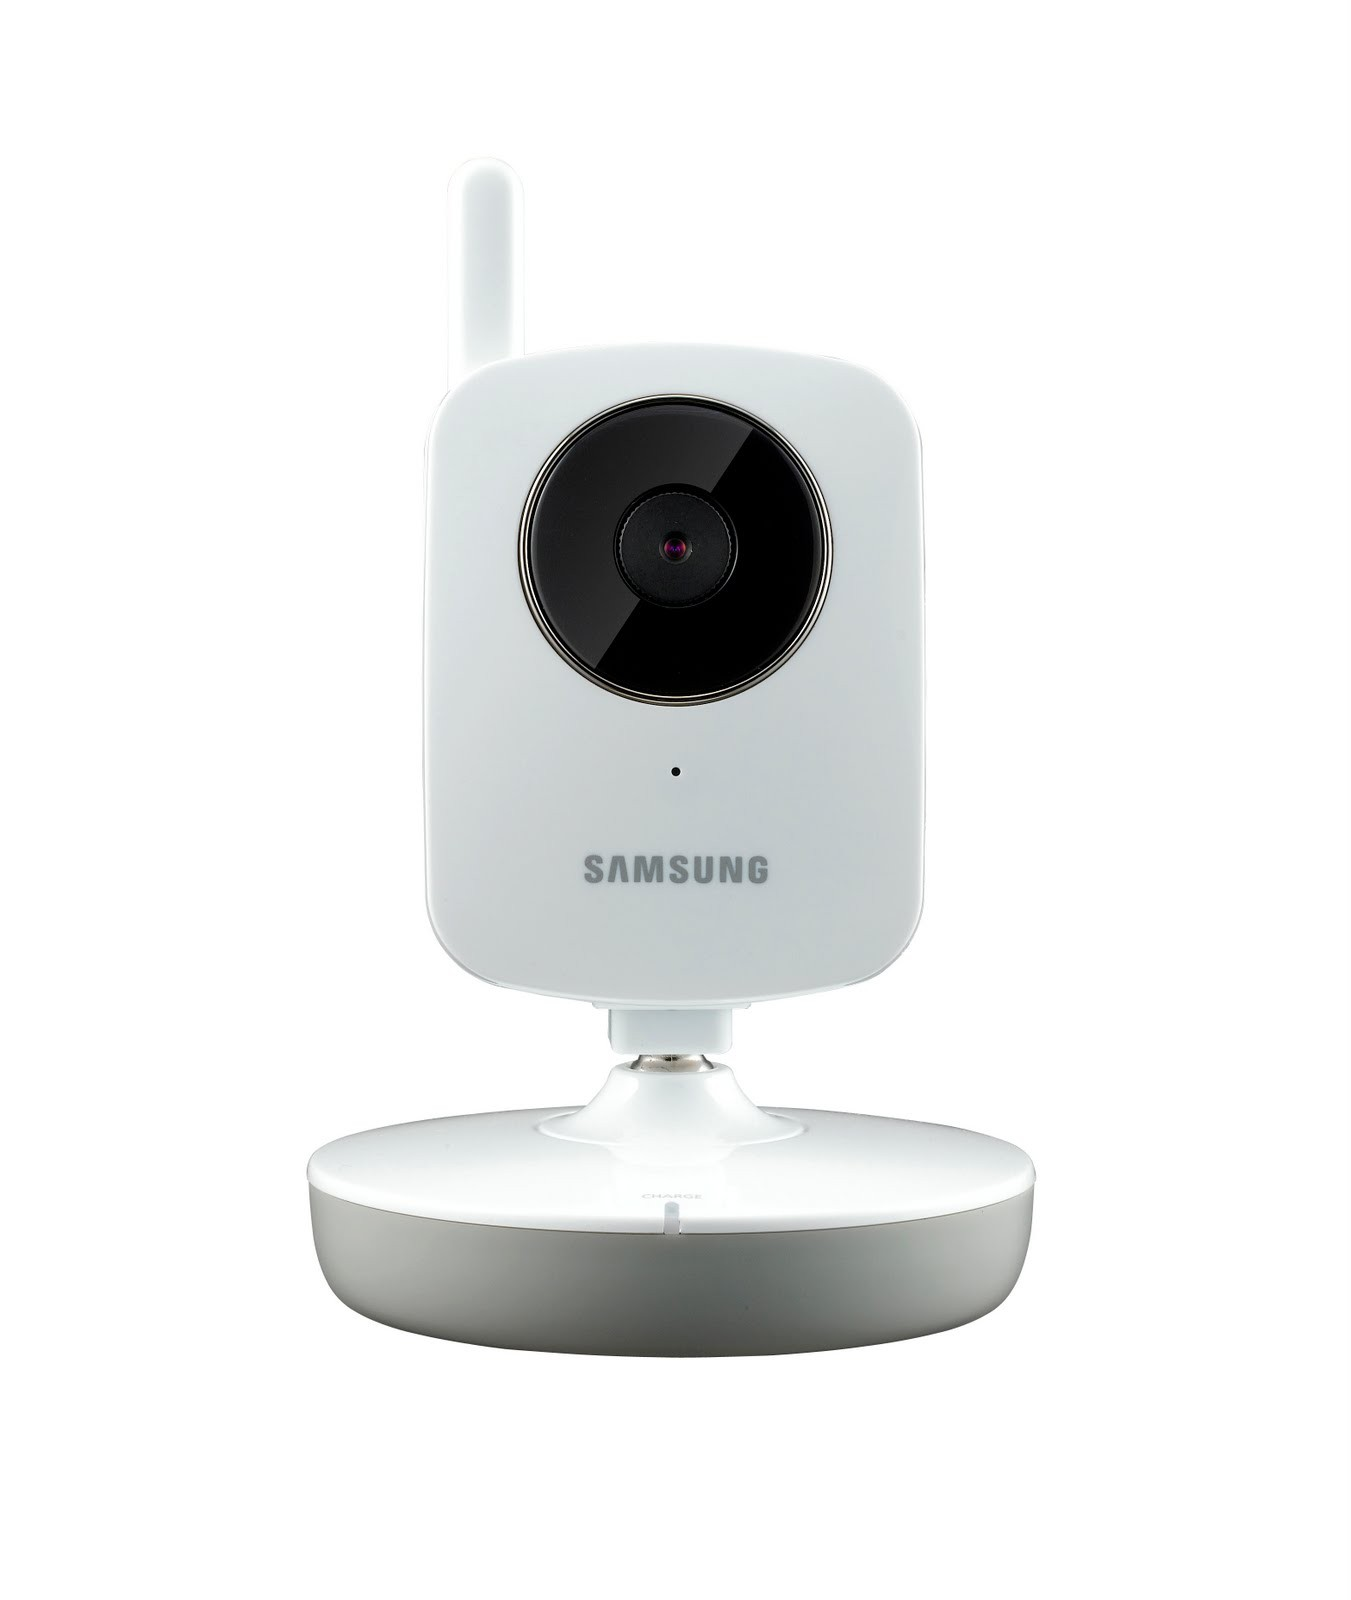 500031456-Samsung SEW-3030 Wireless Security Monitoring System-image